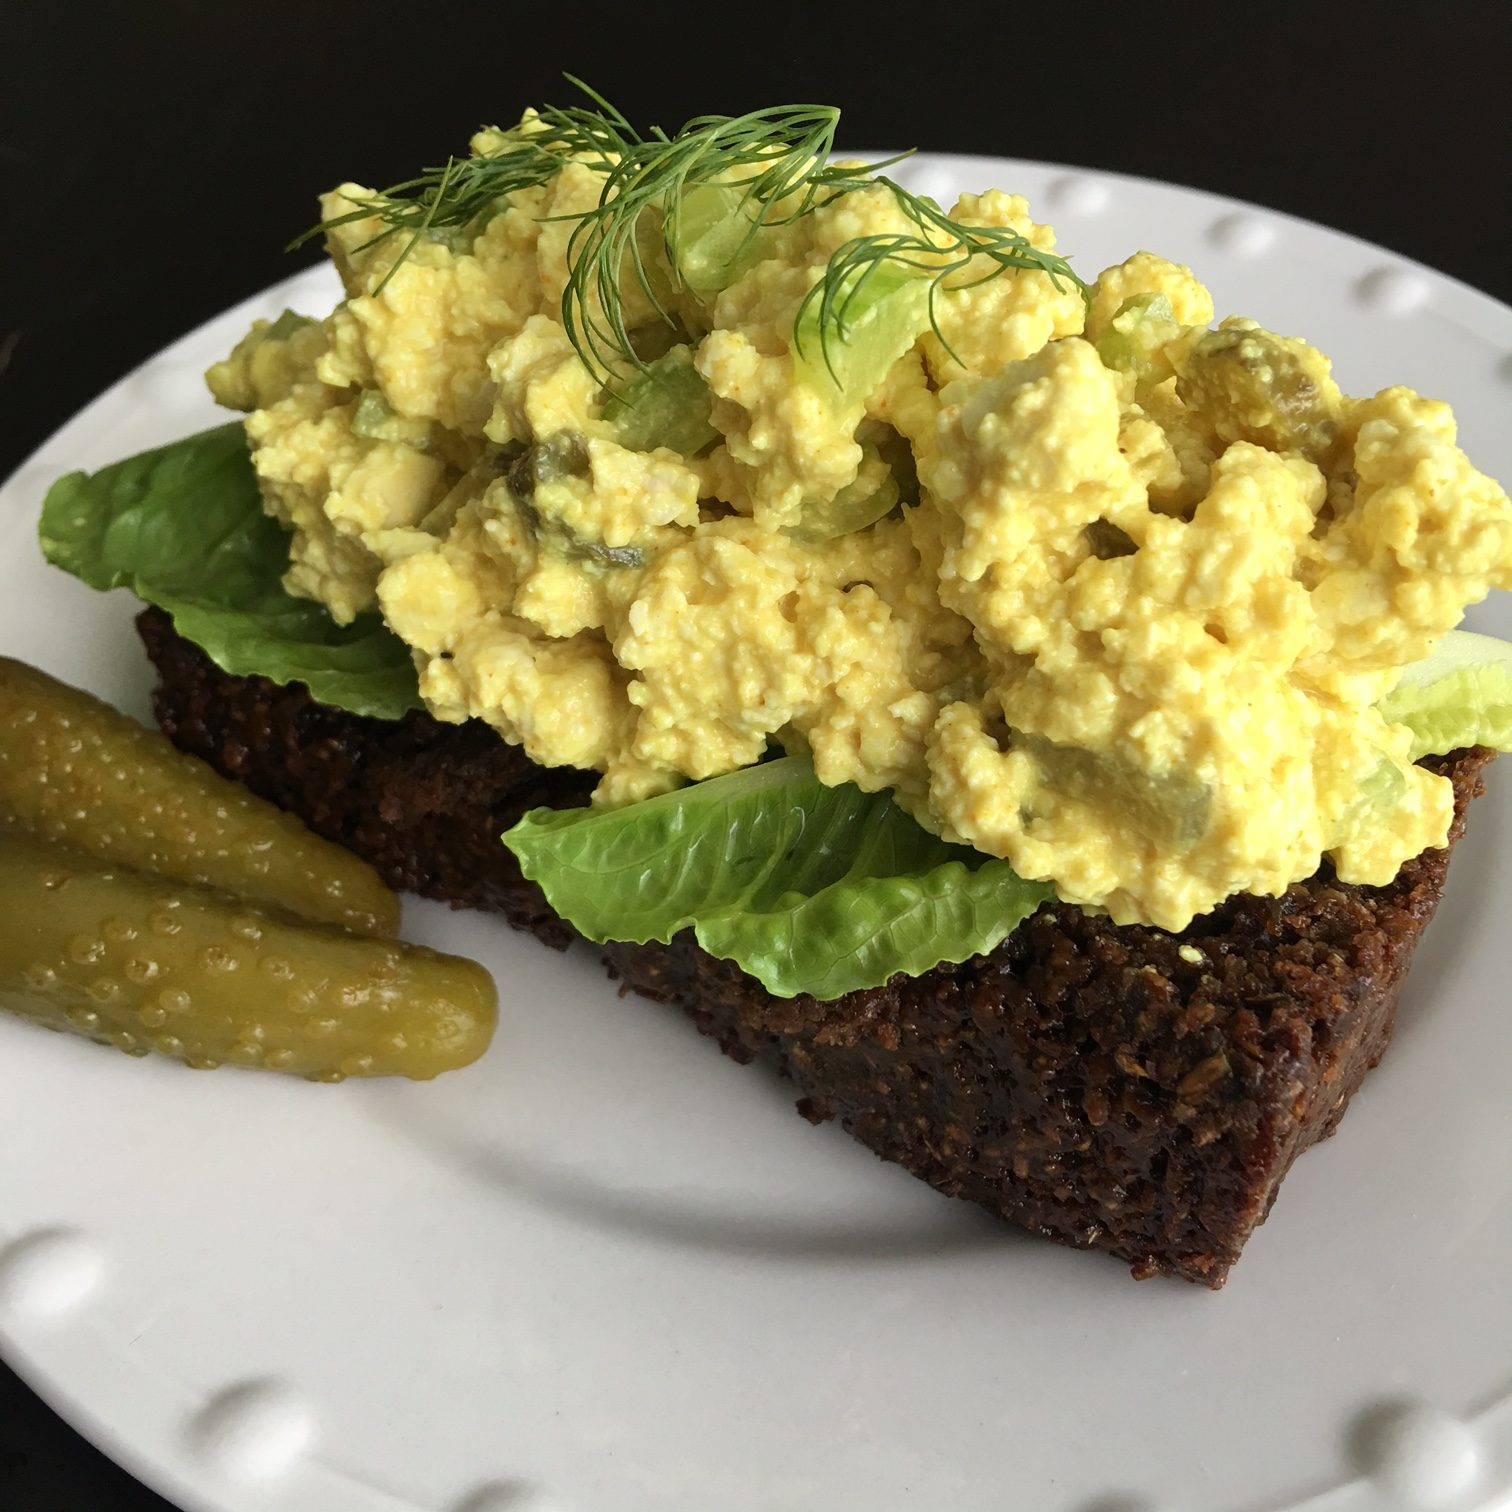 Tip Tofu Egg Salad Is Easy To Make And Adaptable To Anyone S Taste Include Dill Or Sweet Pickles Paprika Scallions And Or Celery